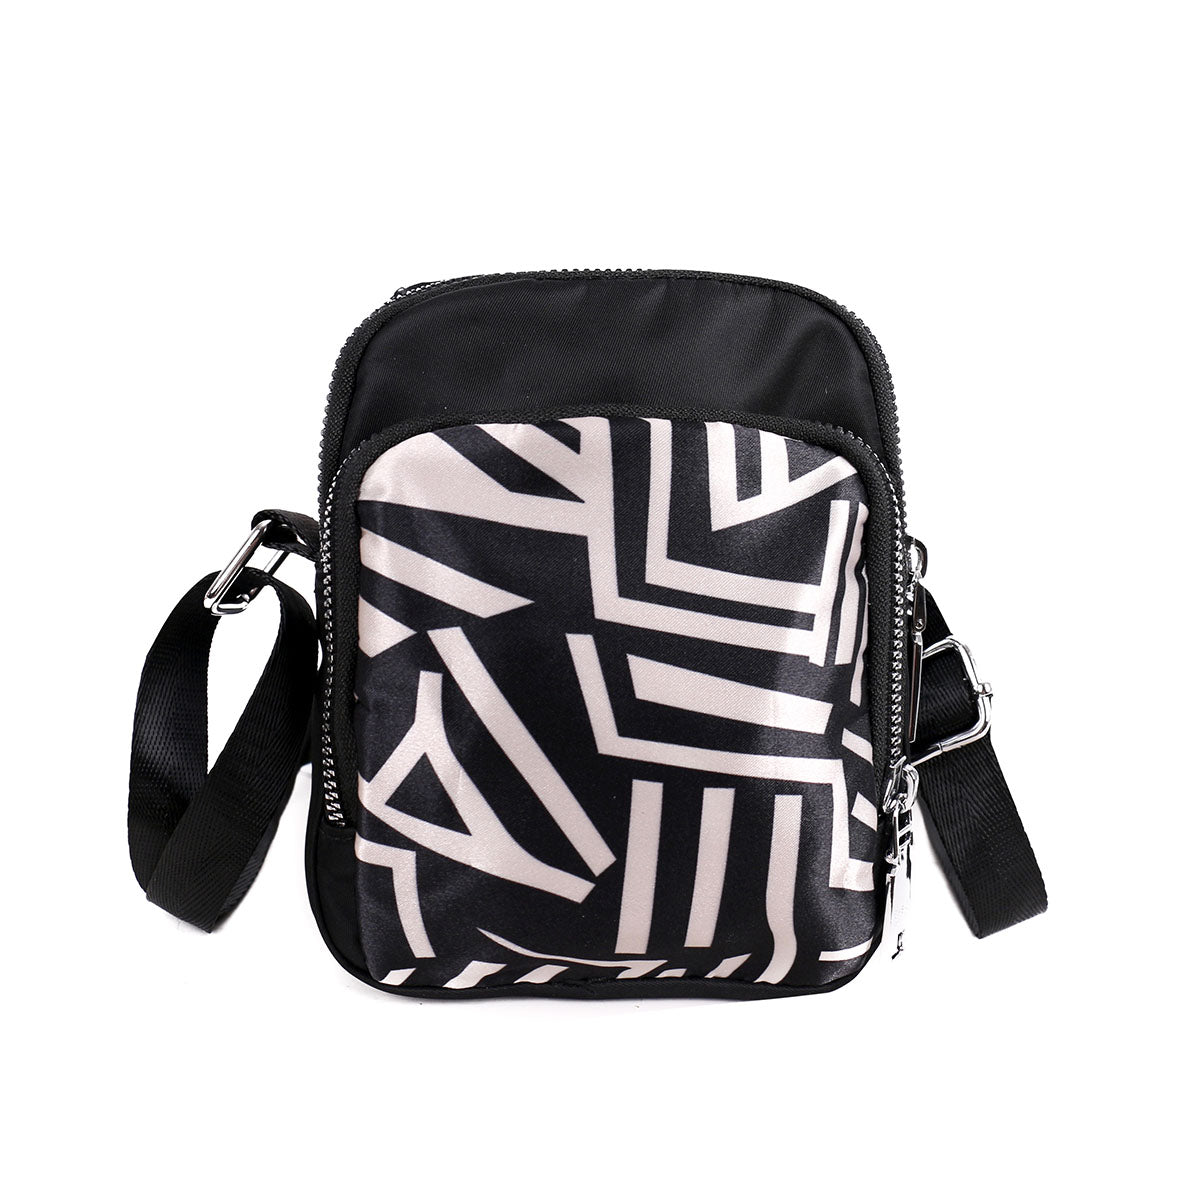 LYDC Crossbody Backpack Purse